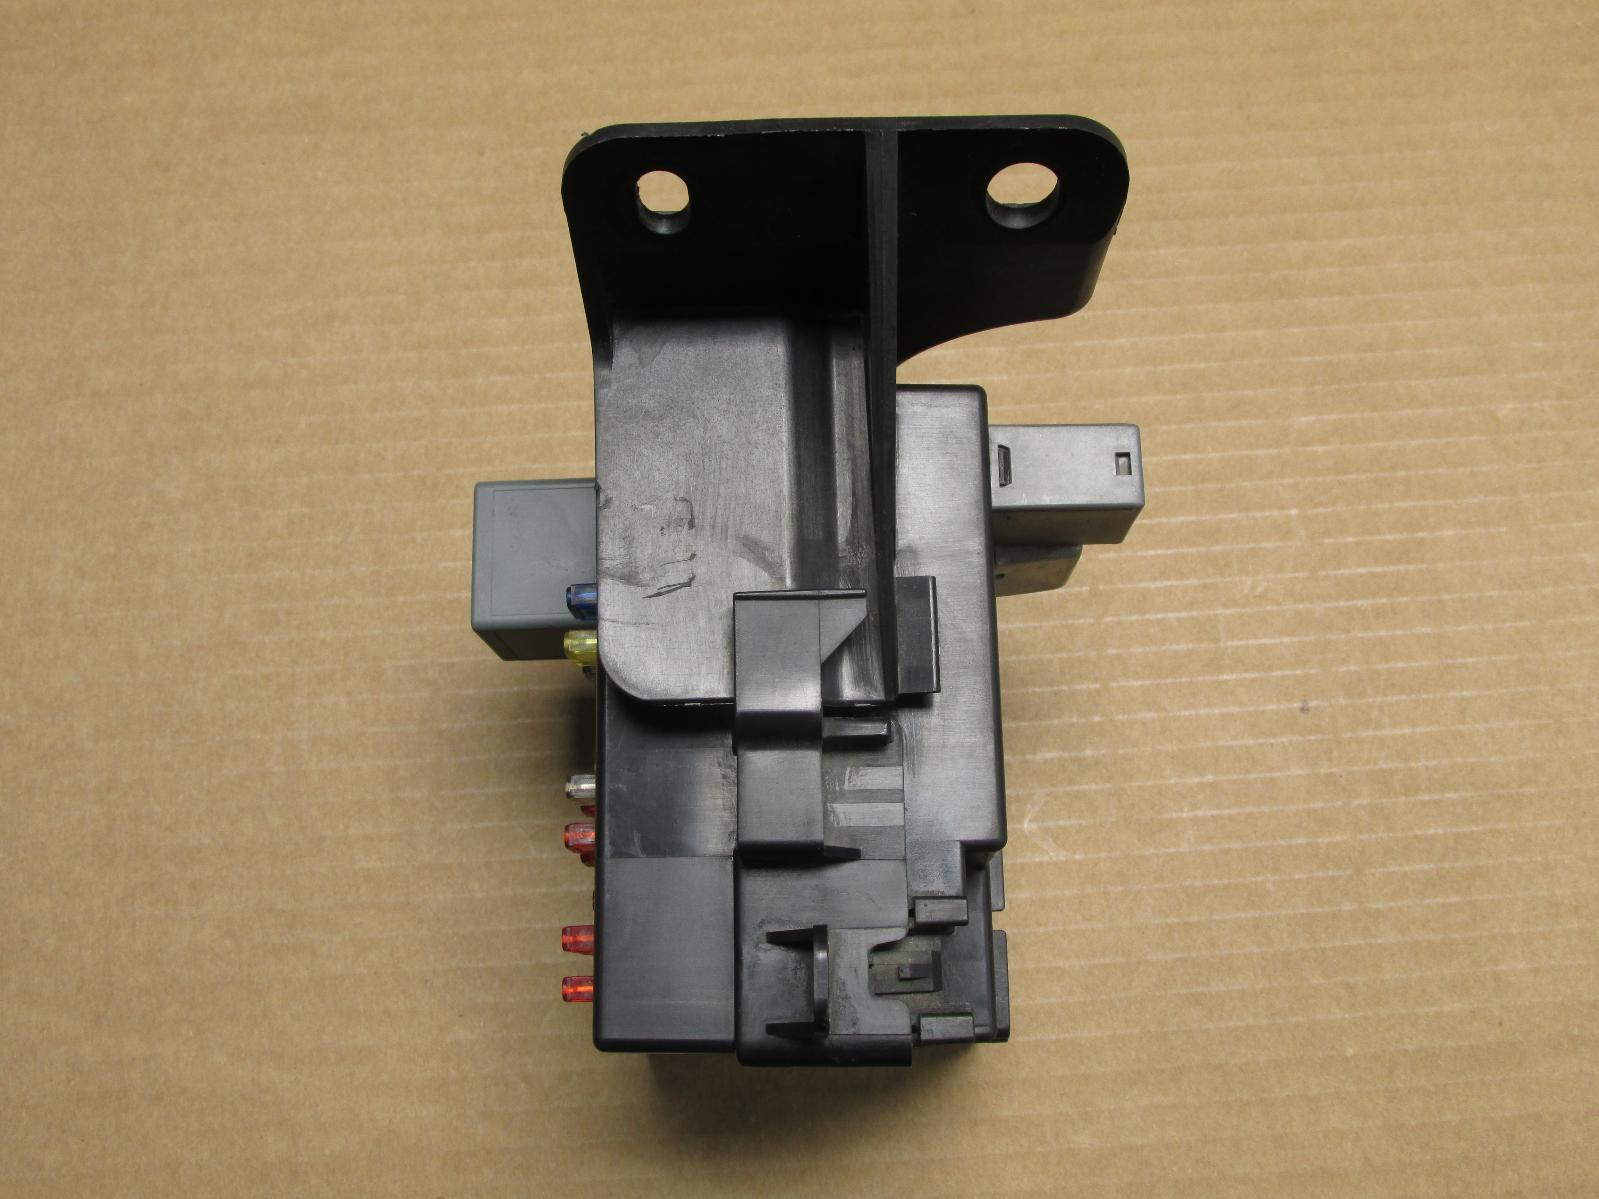 chevrolet impala fuse box on 2000 2001 2002 2003 2004 2005 chevy impala left side fuse ... 2008 chevrolet impala fuse box diagram